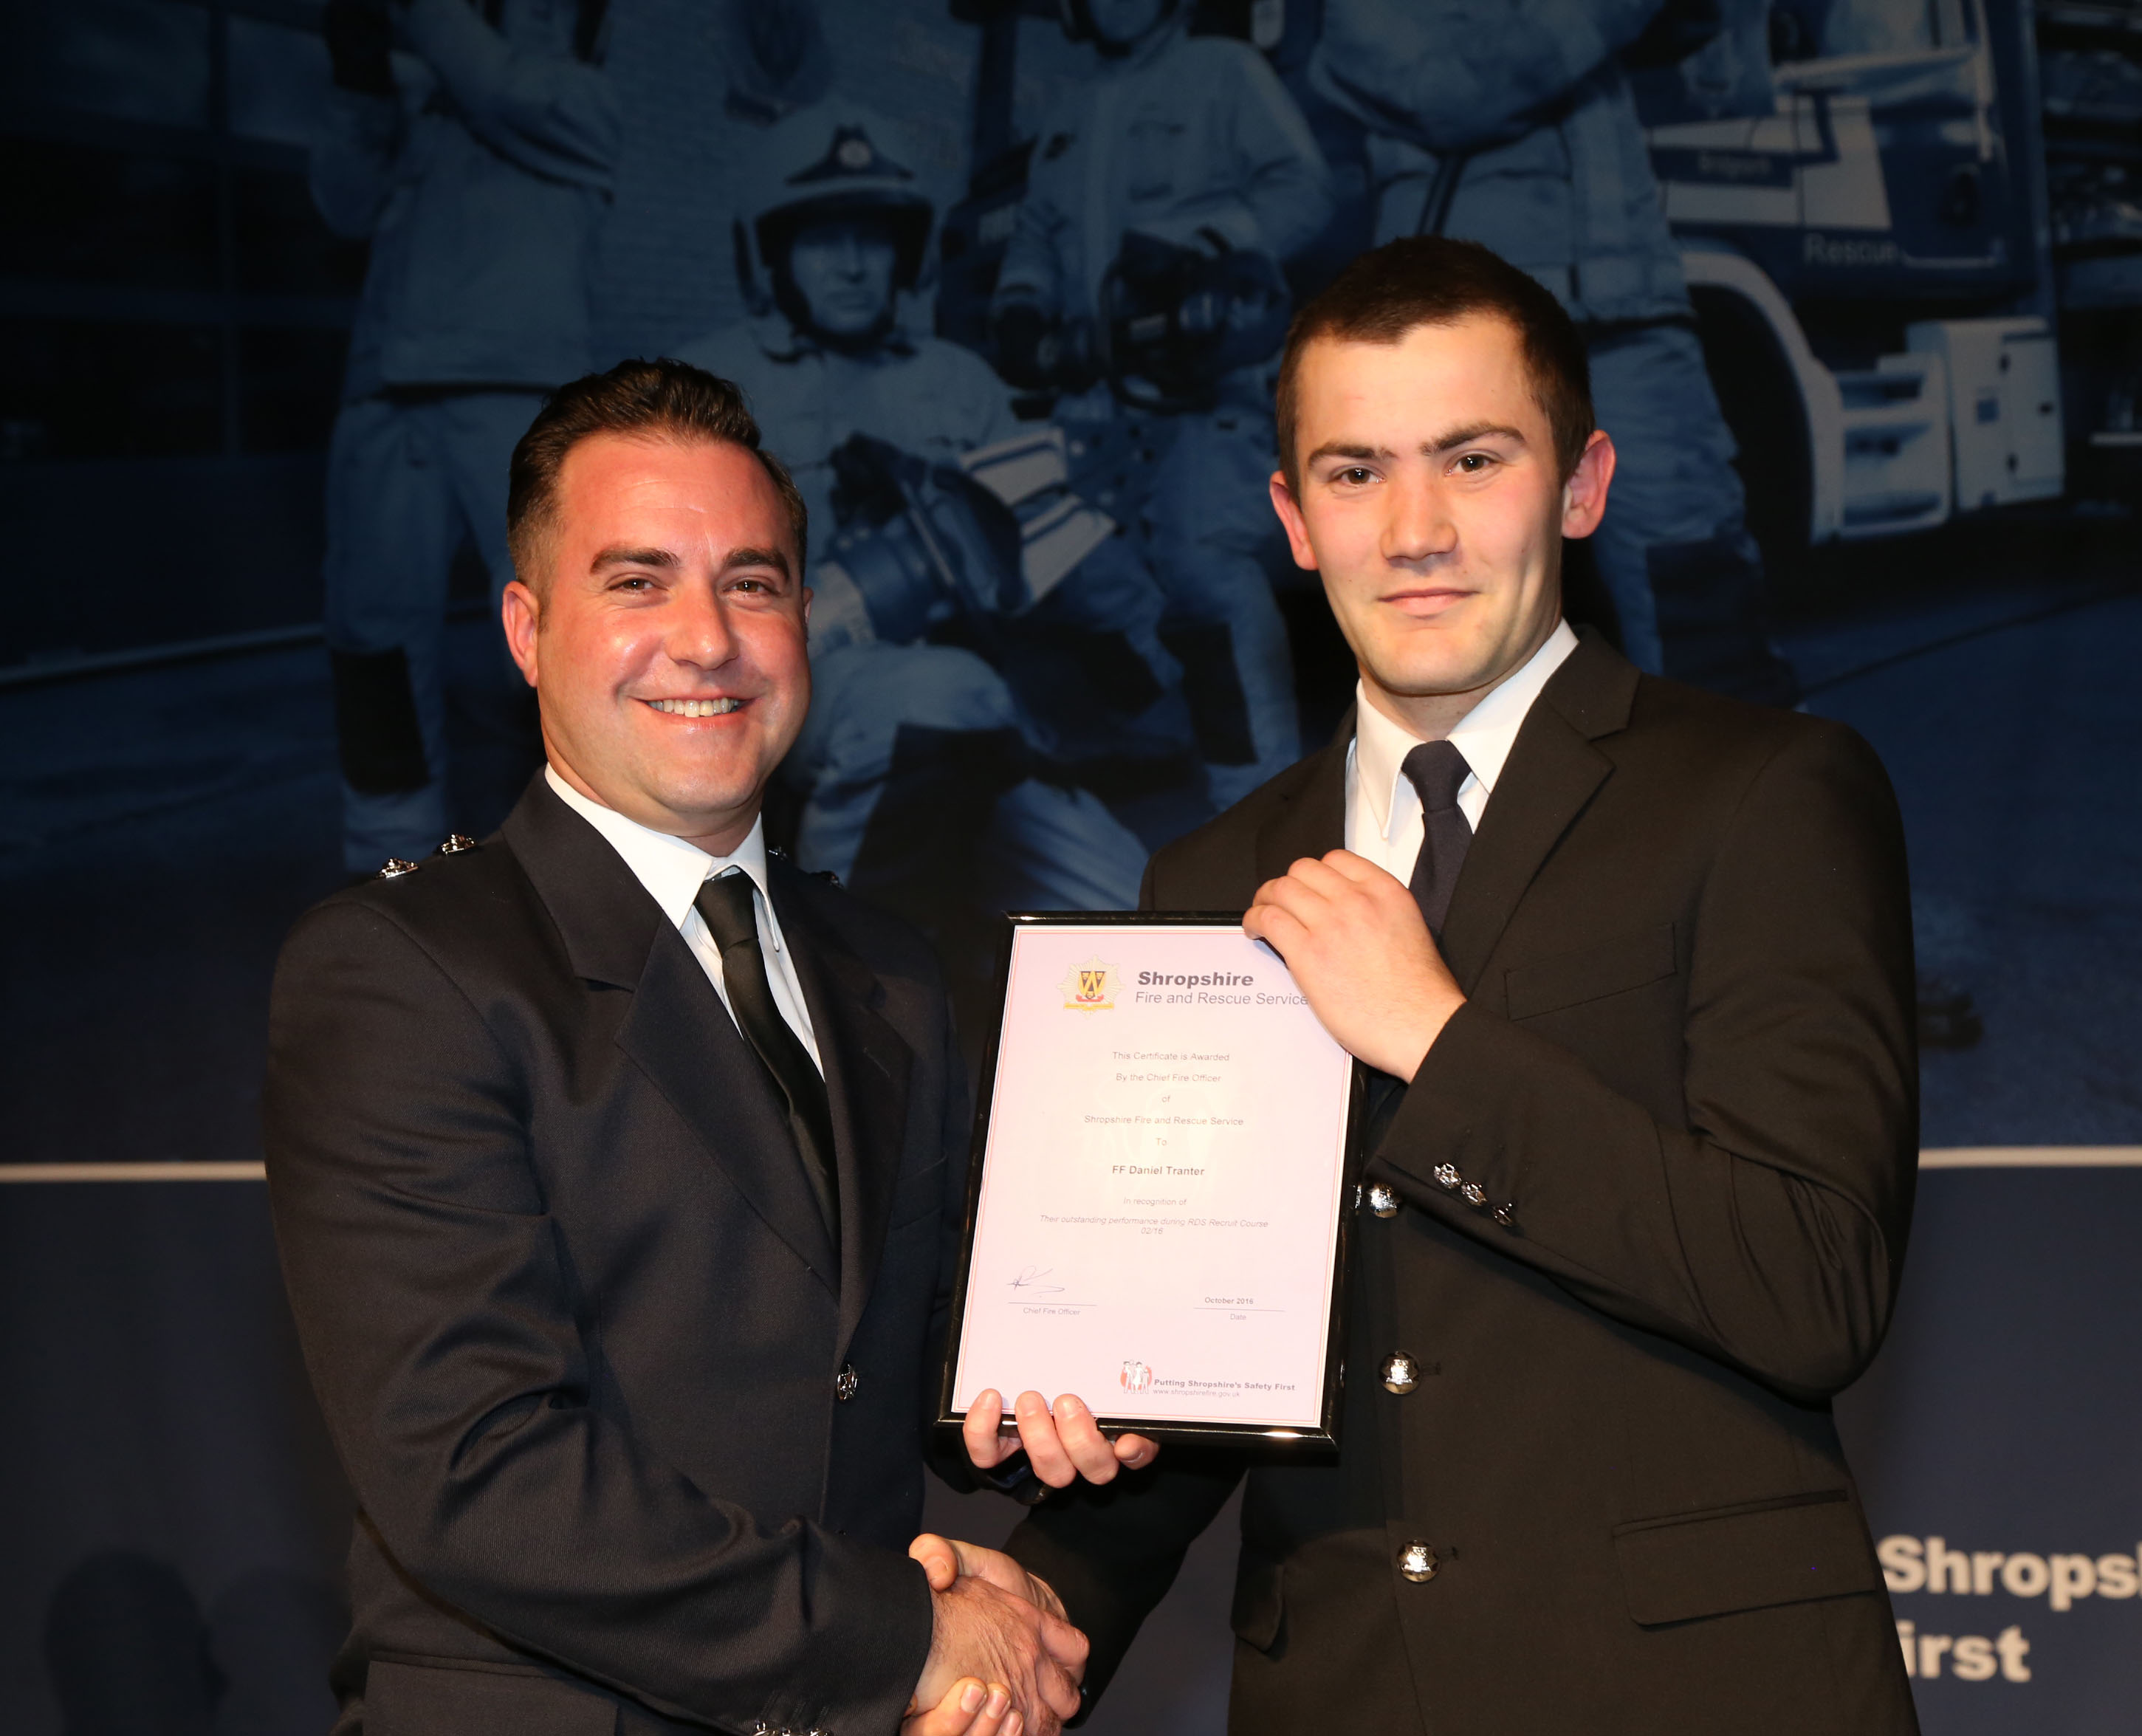 Factory worker Daniel Tranter, from Bishops Castle, won the top student award for his course.